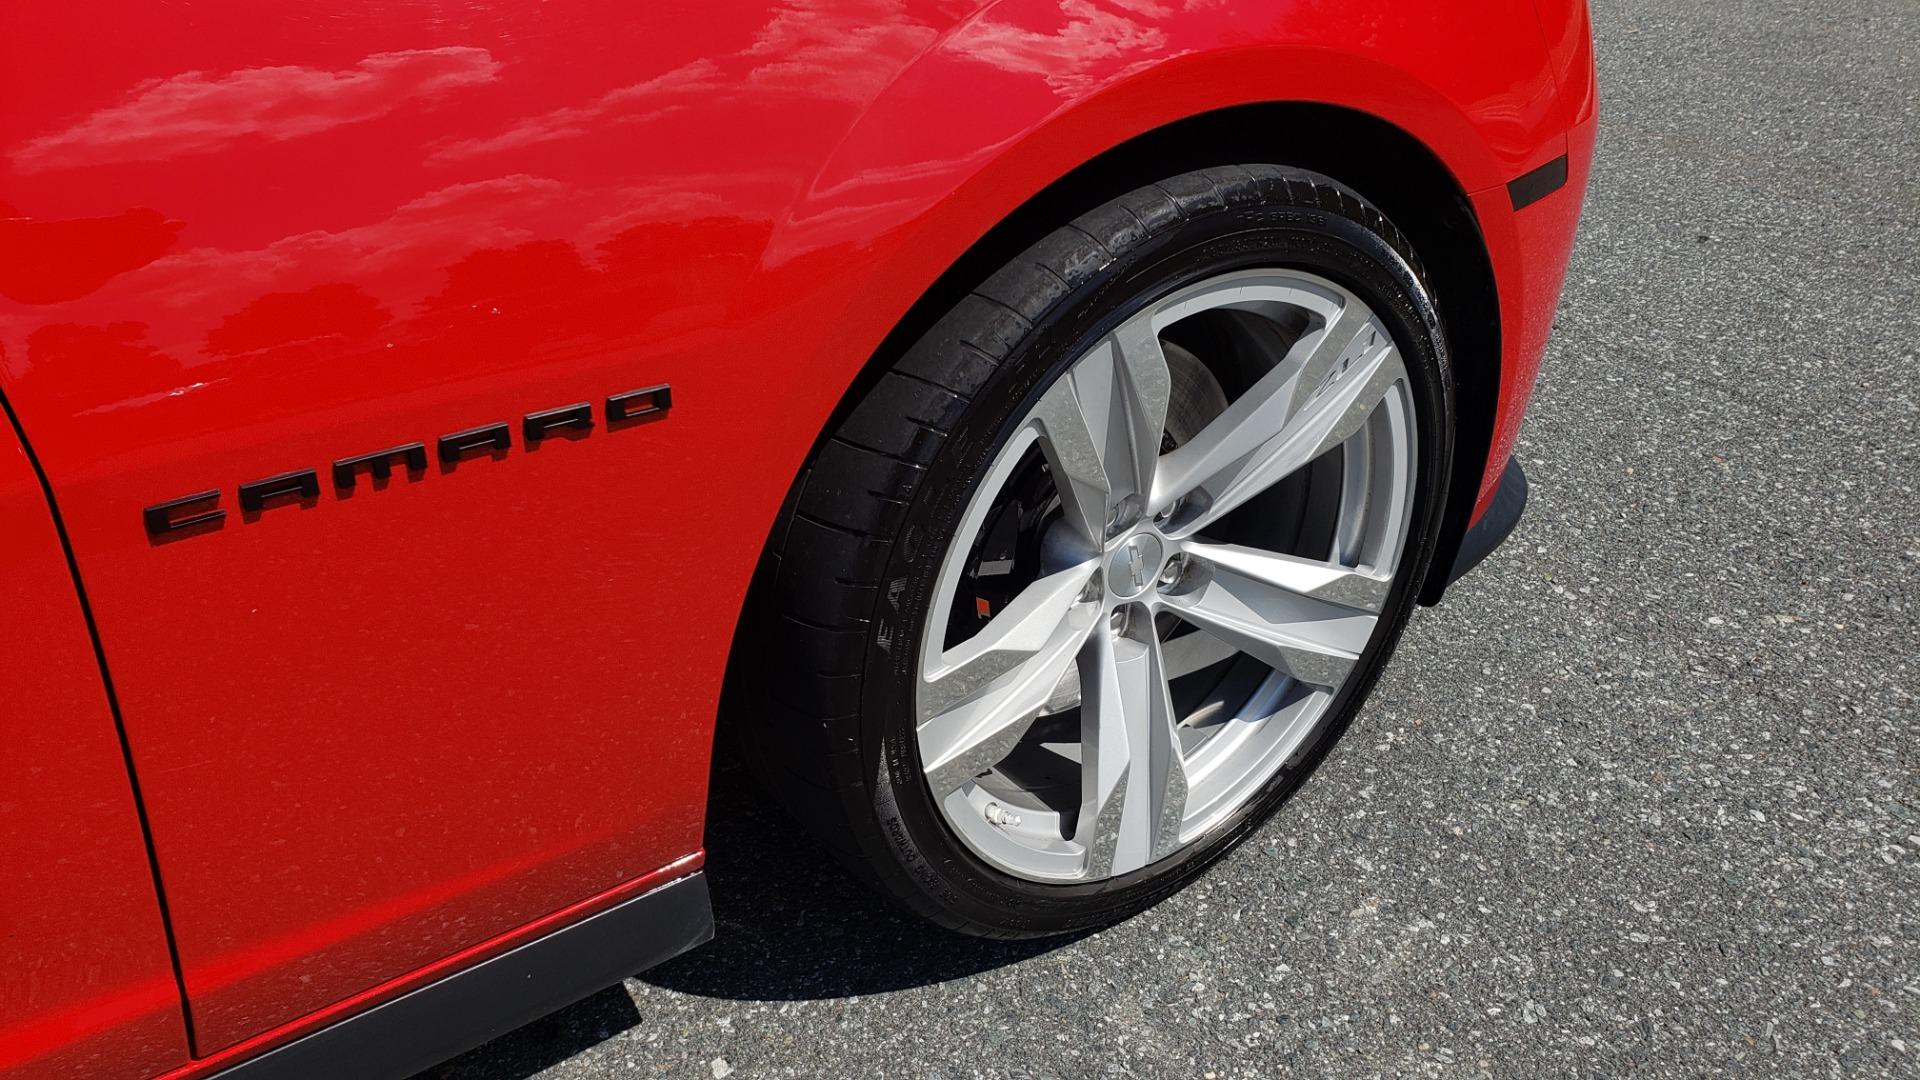 Used 2013 Chevrolet CAMARO ZL1 580HP / AUTO / NAV / BOSTON ACOUSTIC SND / REARVIEW for sale $40,995 at Formula Imports in Charlotte NC 28227 14